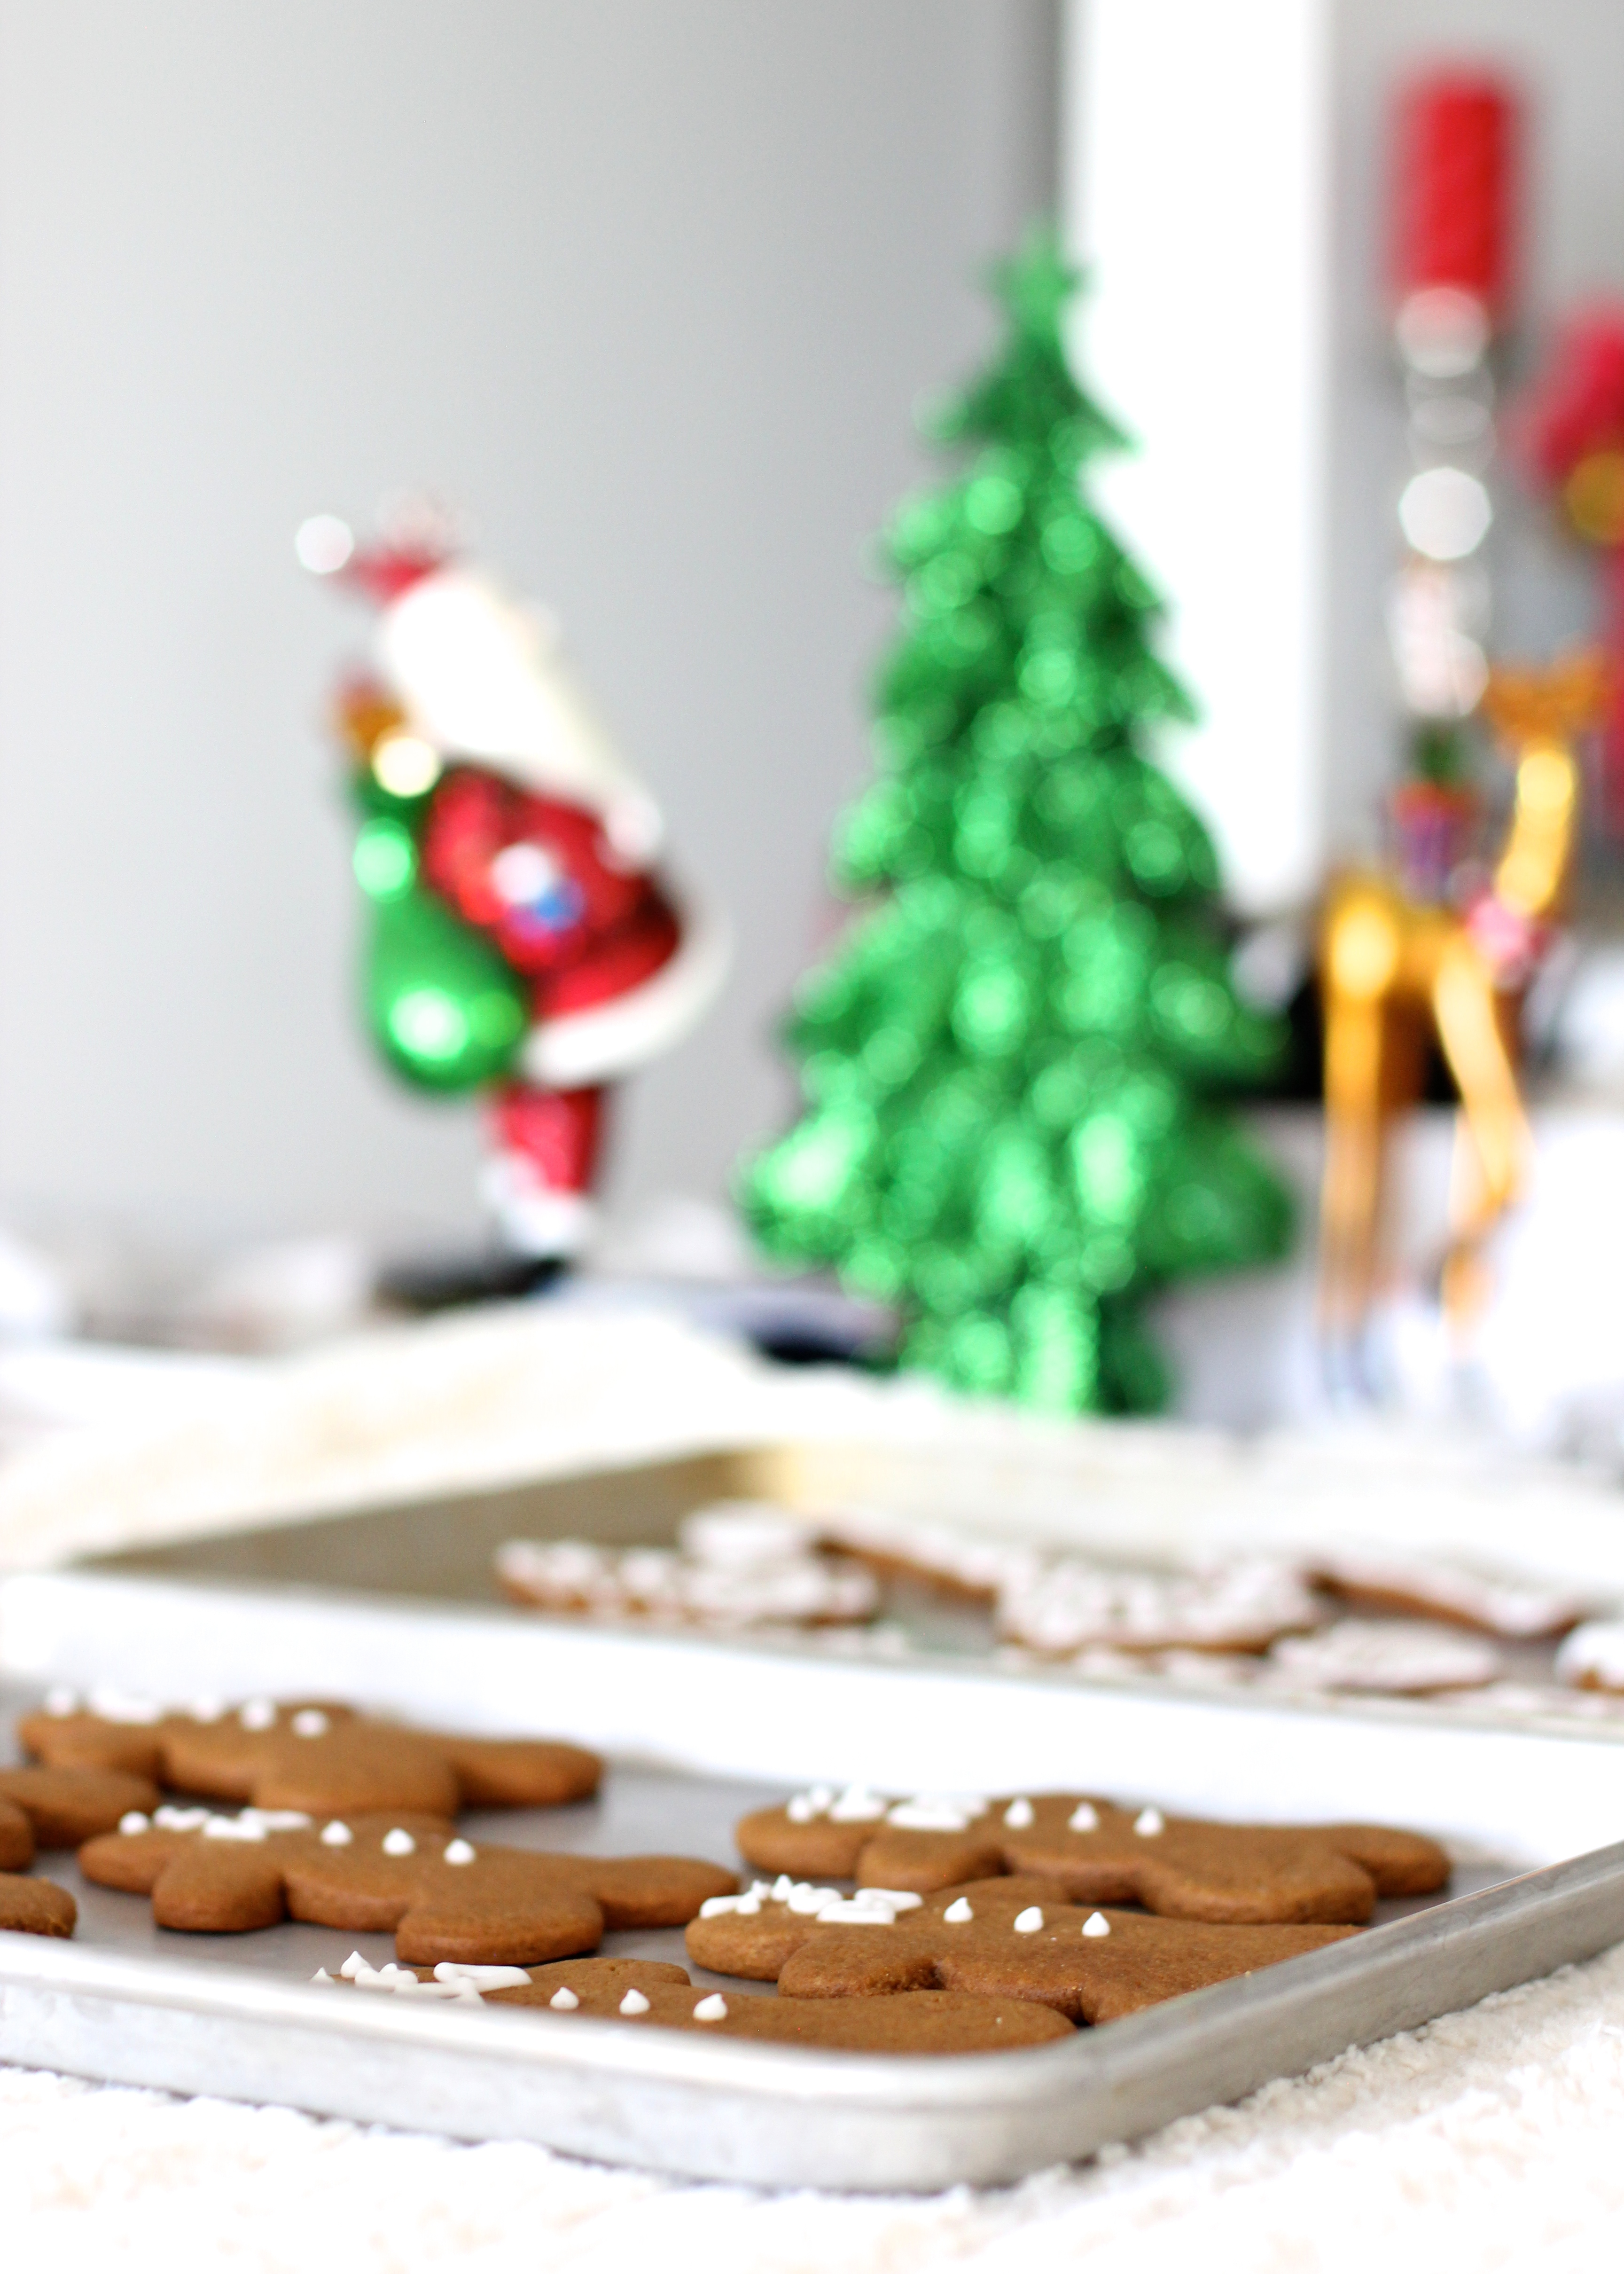 DIY Gingerbread Cookie Decorating Party